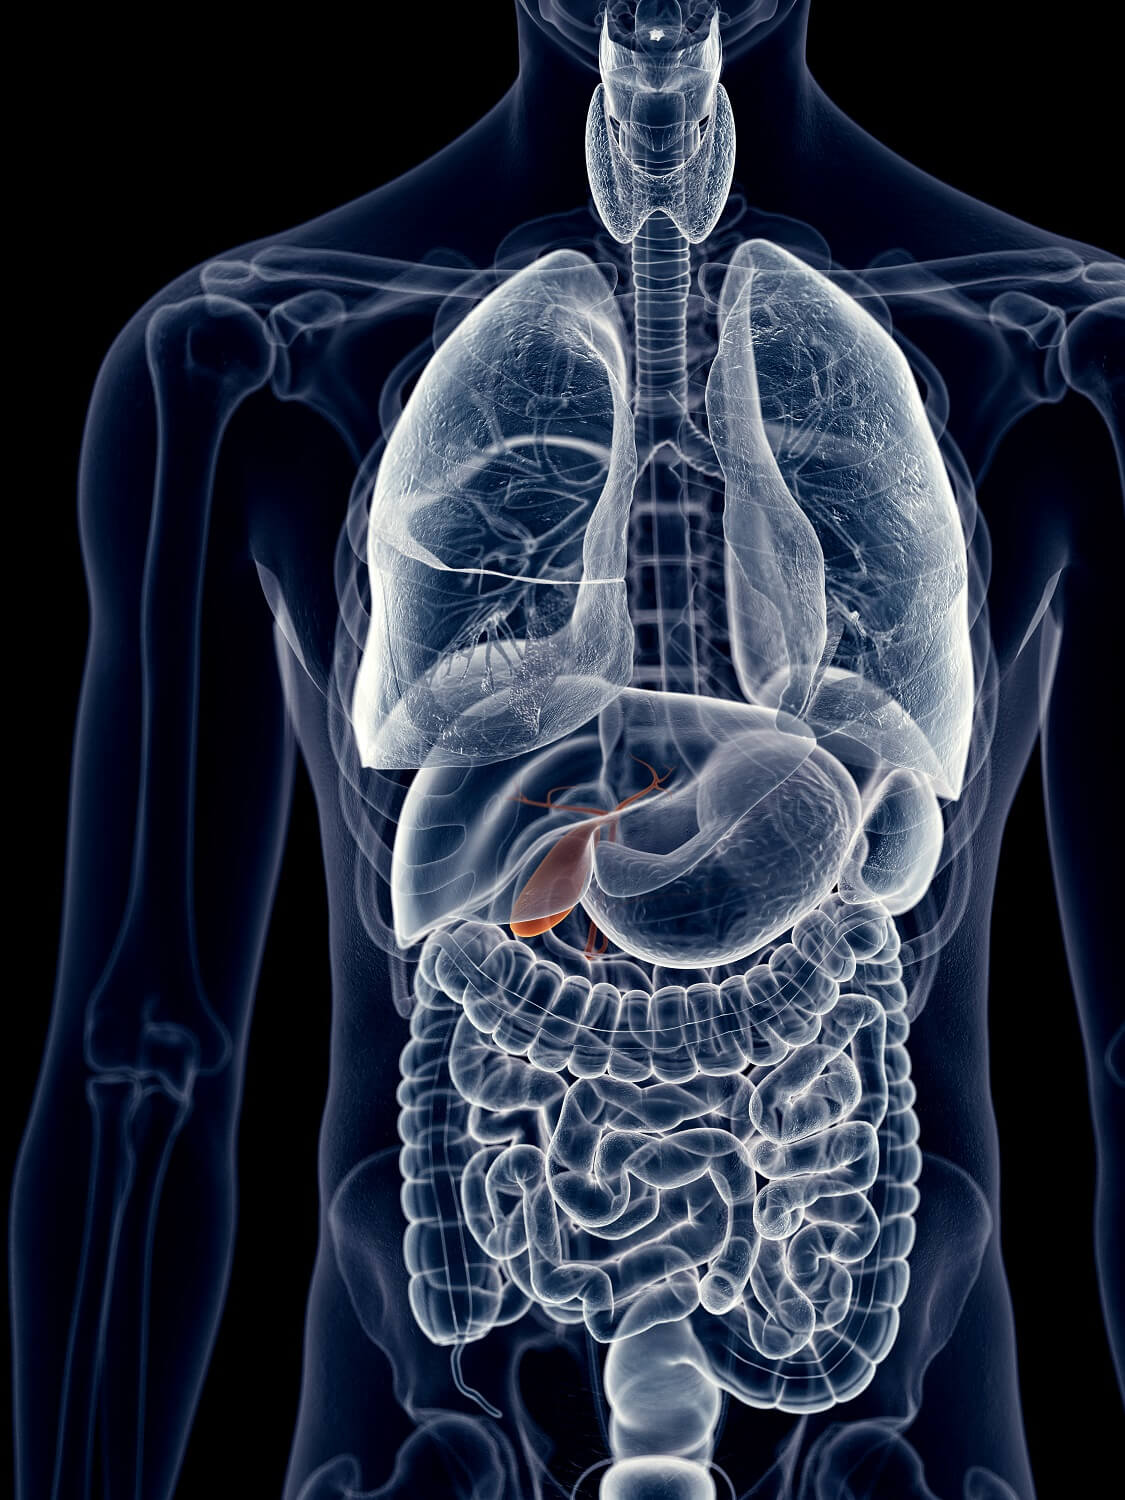 Gallbladder Removal Is Common But Is It Necessary 04032017